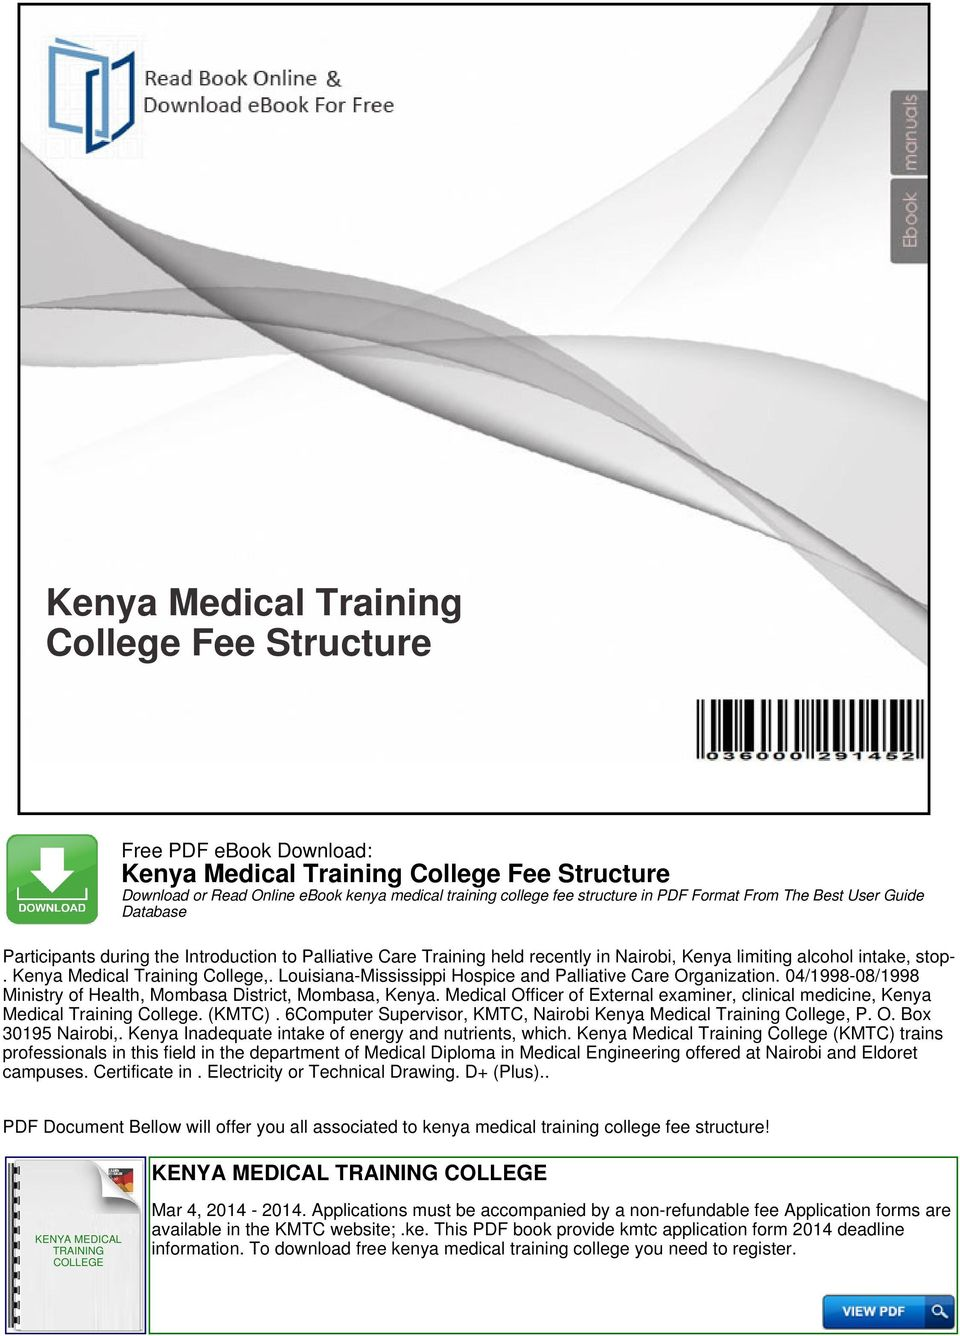 Kenya Medical Training College Fee Structure - PDF